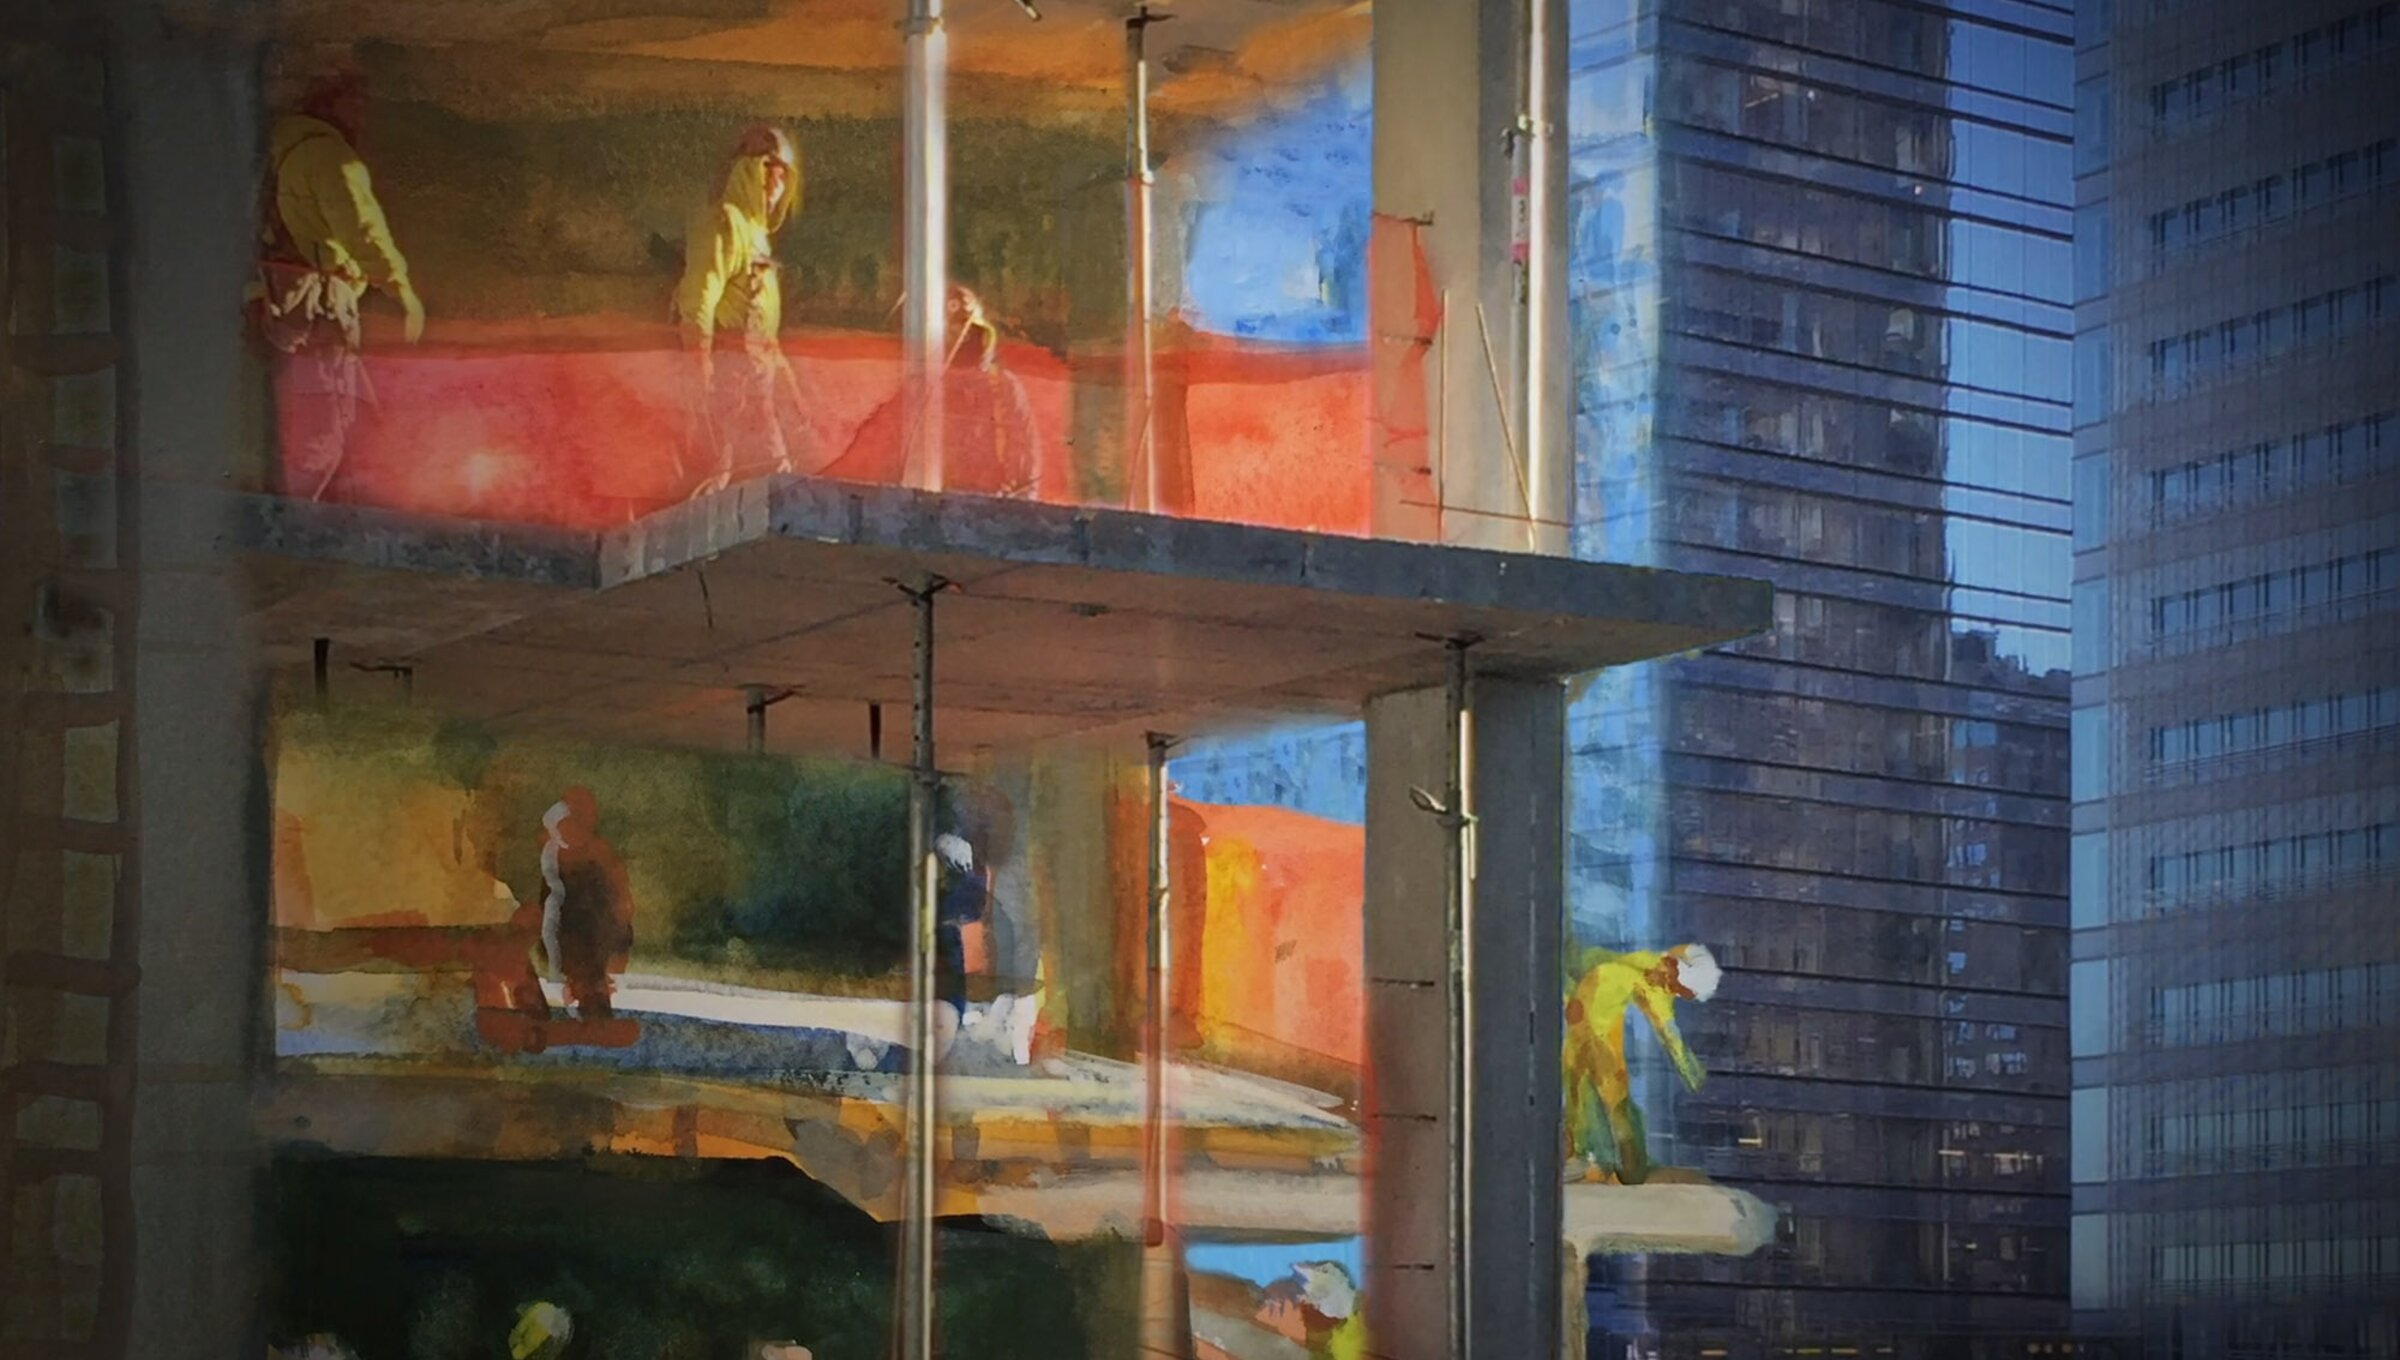 What will an artist paint when a new high-rise blocks her view of New York? | Psyche